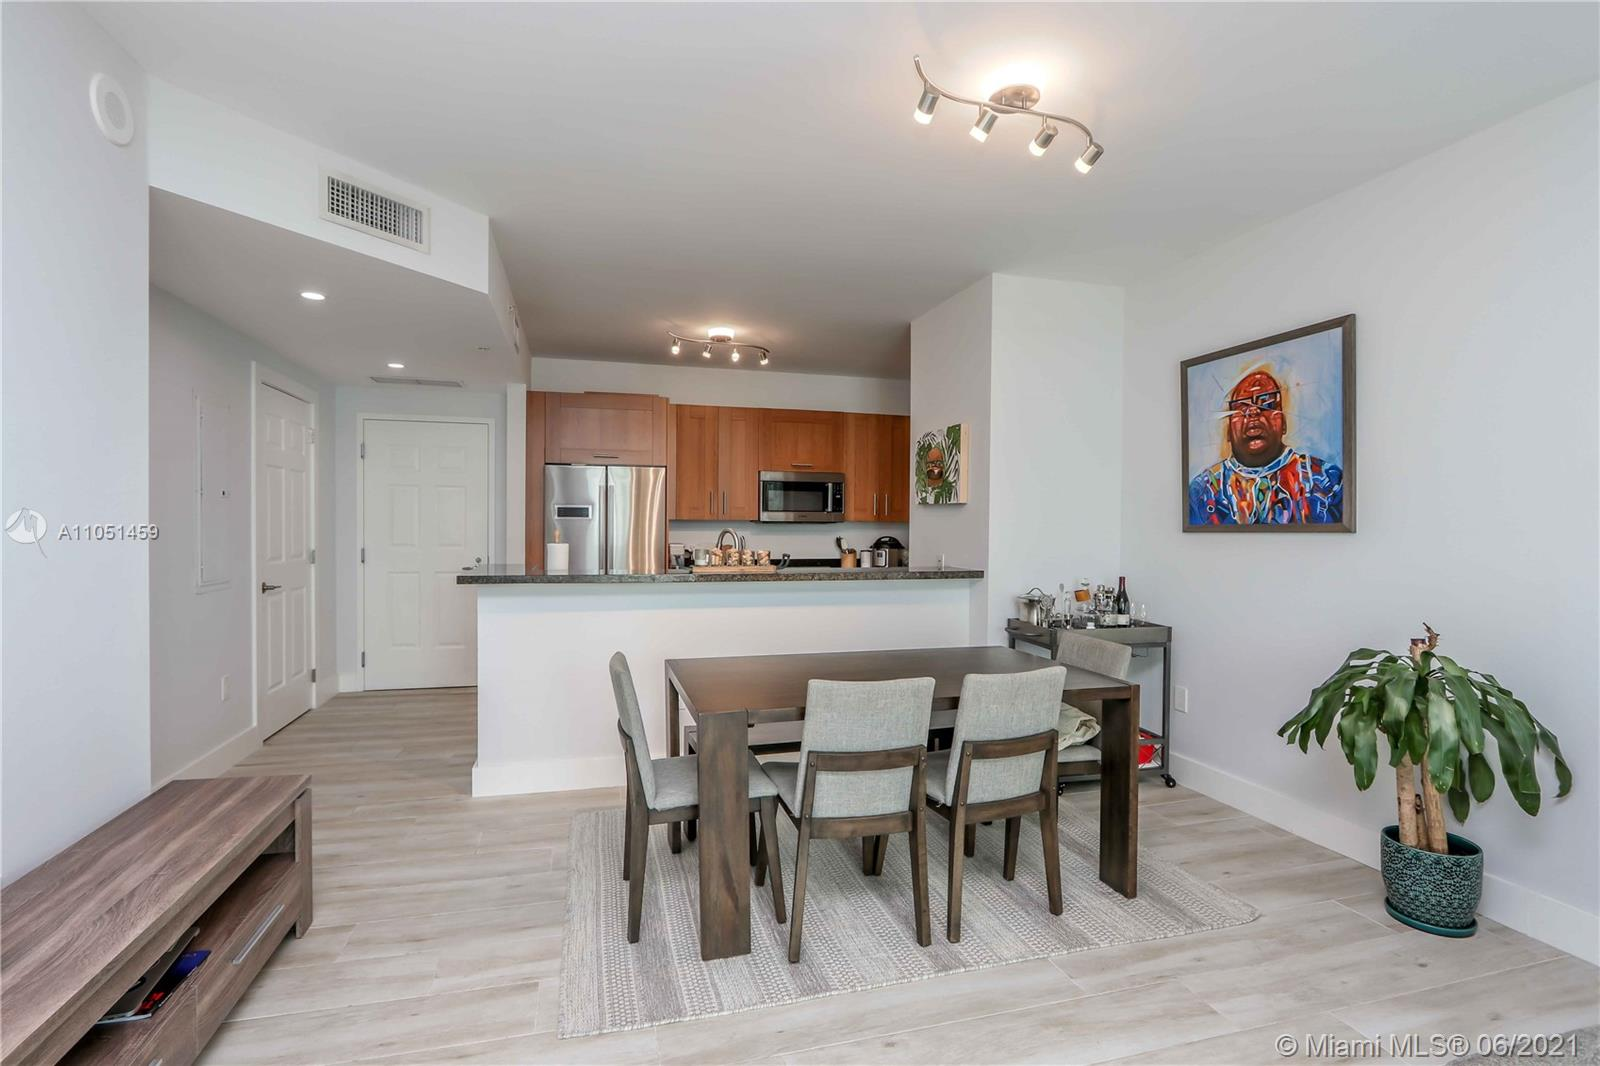 CORAL GABLES CONDO RIGHT ON THE PRESTIGIOUS PONCE DE LEON BLVD.  This beautiful 1/1 ½ unit offers high ceilings, chic tile flooring, elegant kitchen with Italian cabinetry, granite counter tops and stainless-steel appliances.  Bathroom has a roman tub and separate shower.  There is one assigned parking space to this unit. The unit has been updated to offer a beautiful, bright space with views of Downtown and Brickell. Catch the Coral Gables Trolley right outside your building door and take a two-minute ride to Miracle Mile, restaurants and/or shopping. The building is full of amenities: modern gym, event room, pool, doorman/security 24/7. Move in ready. Excellent condition. It's a must see!